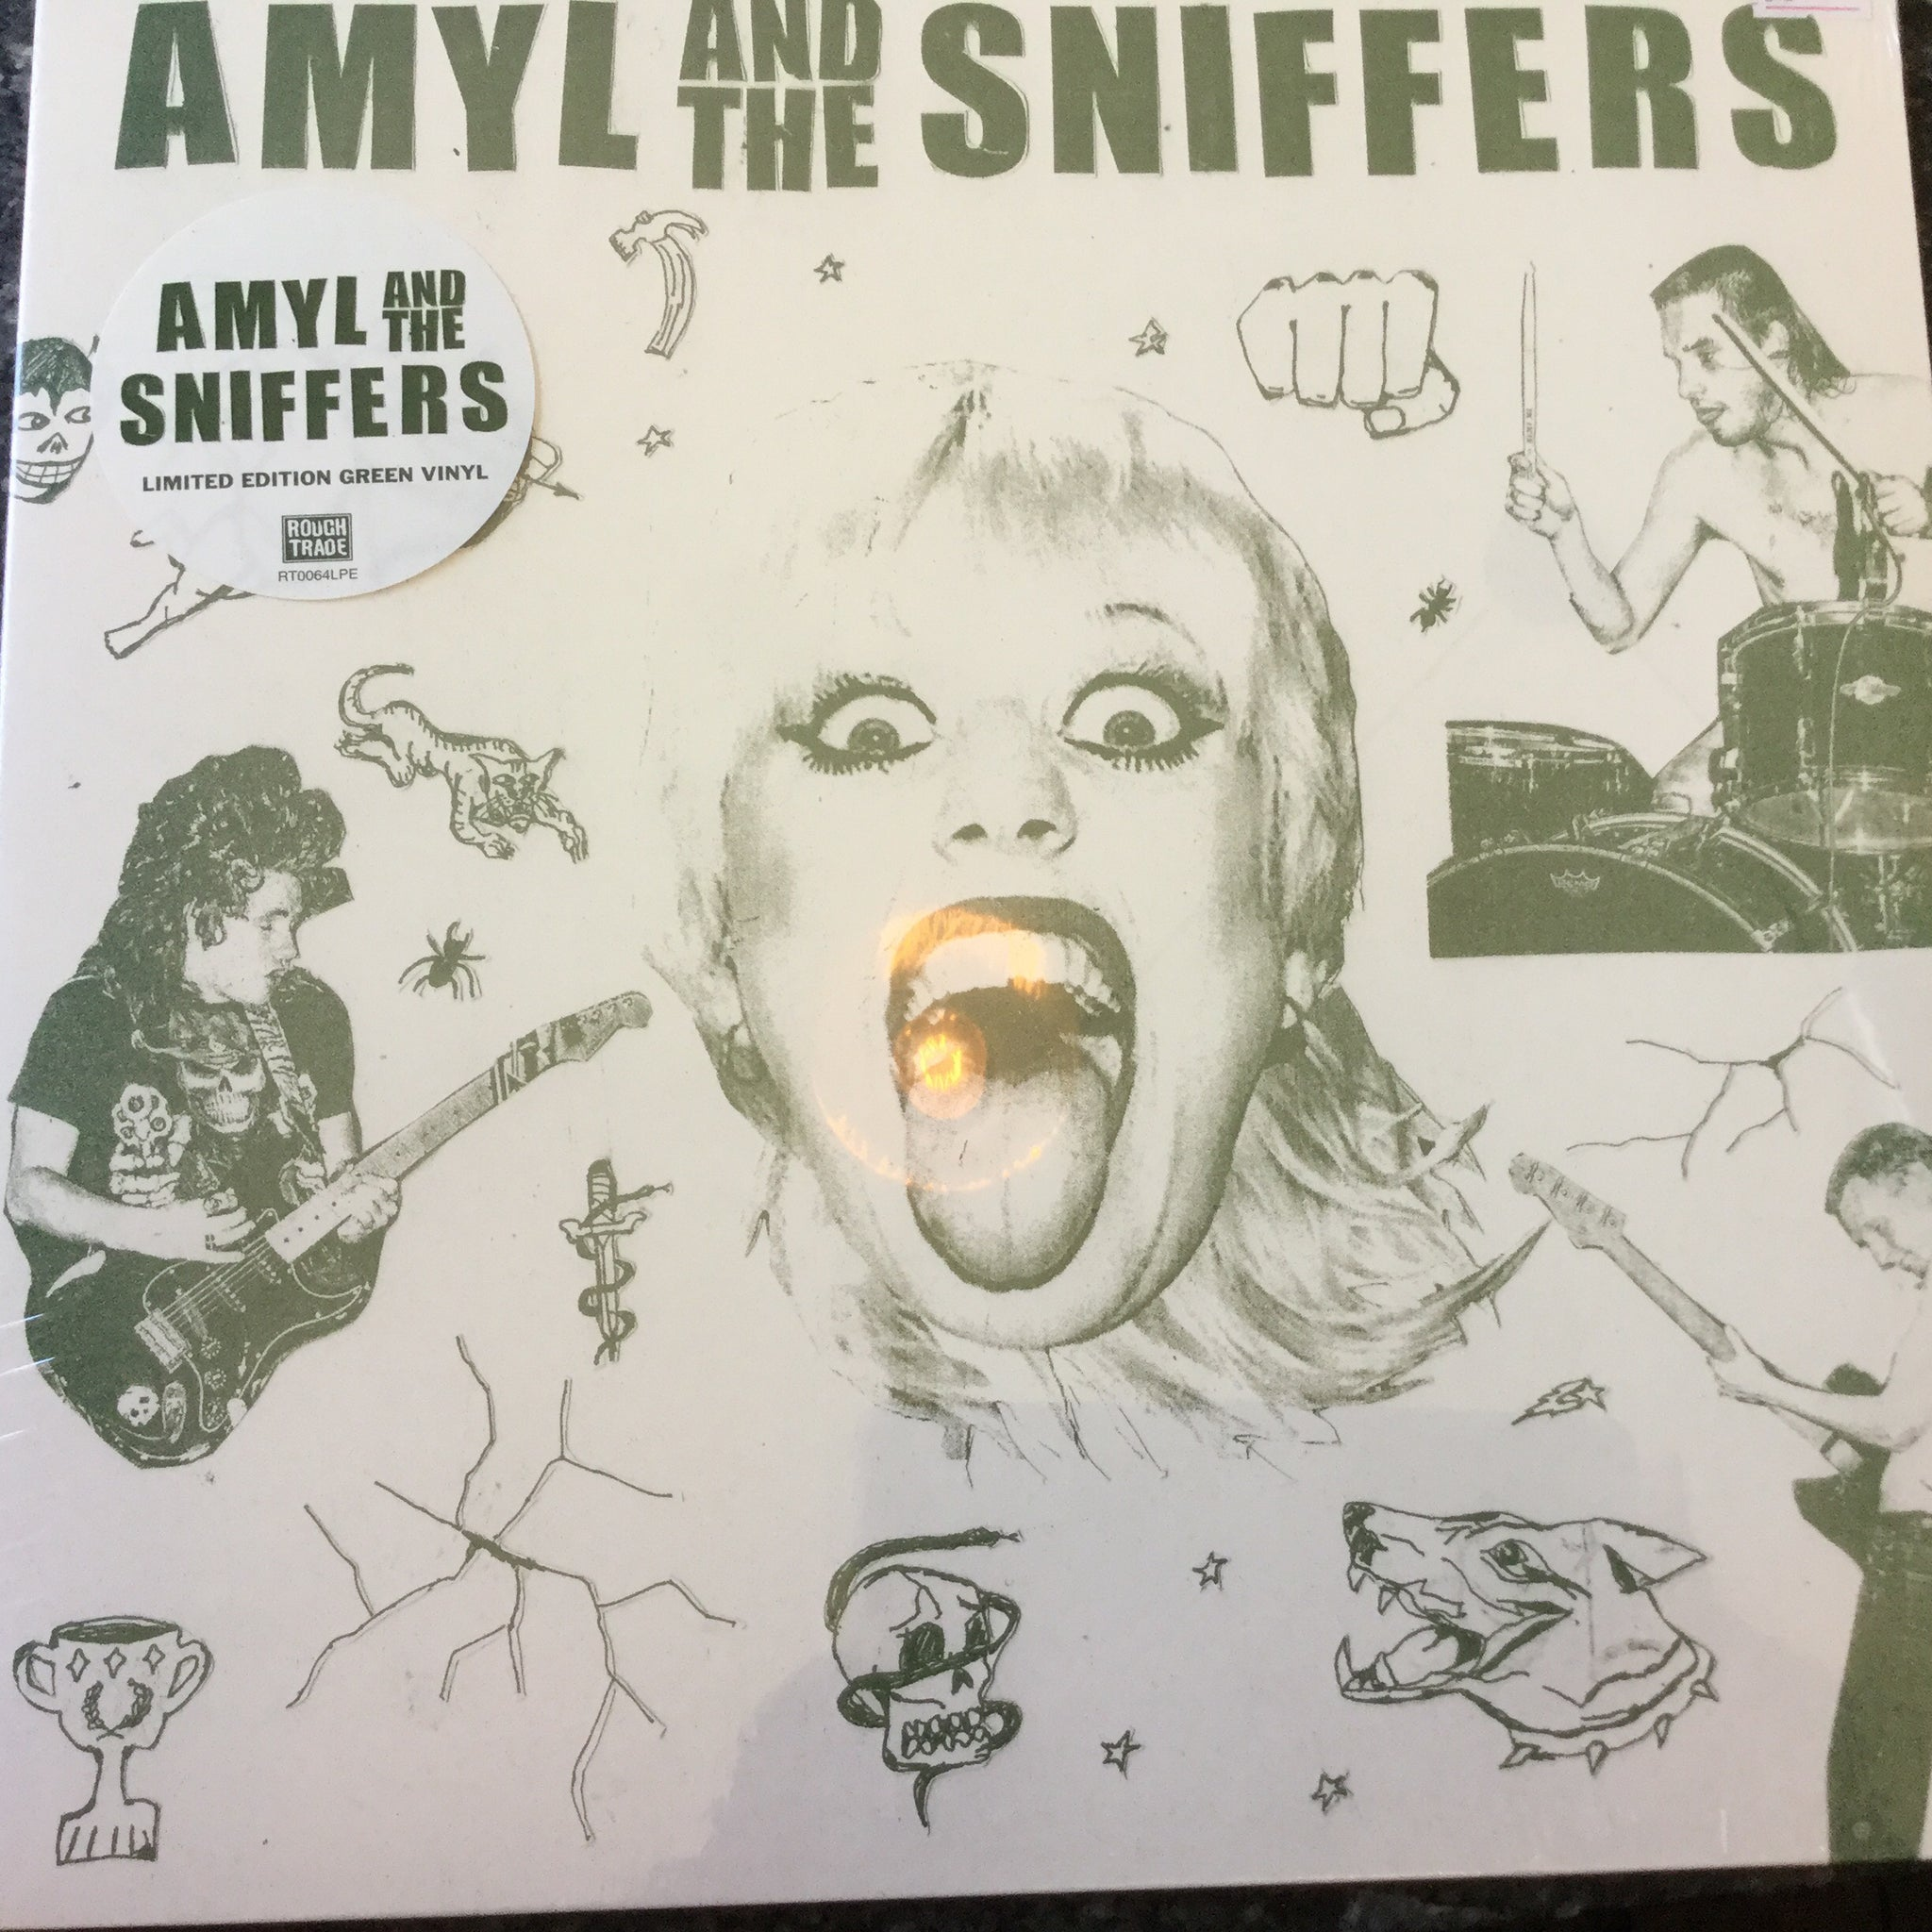 Amyl & the Sniffers - Amyl & the sniffers